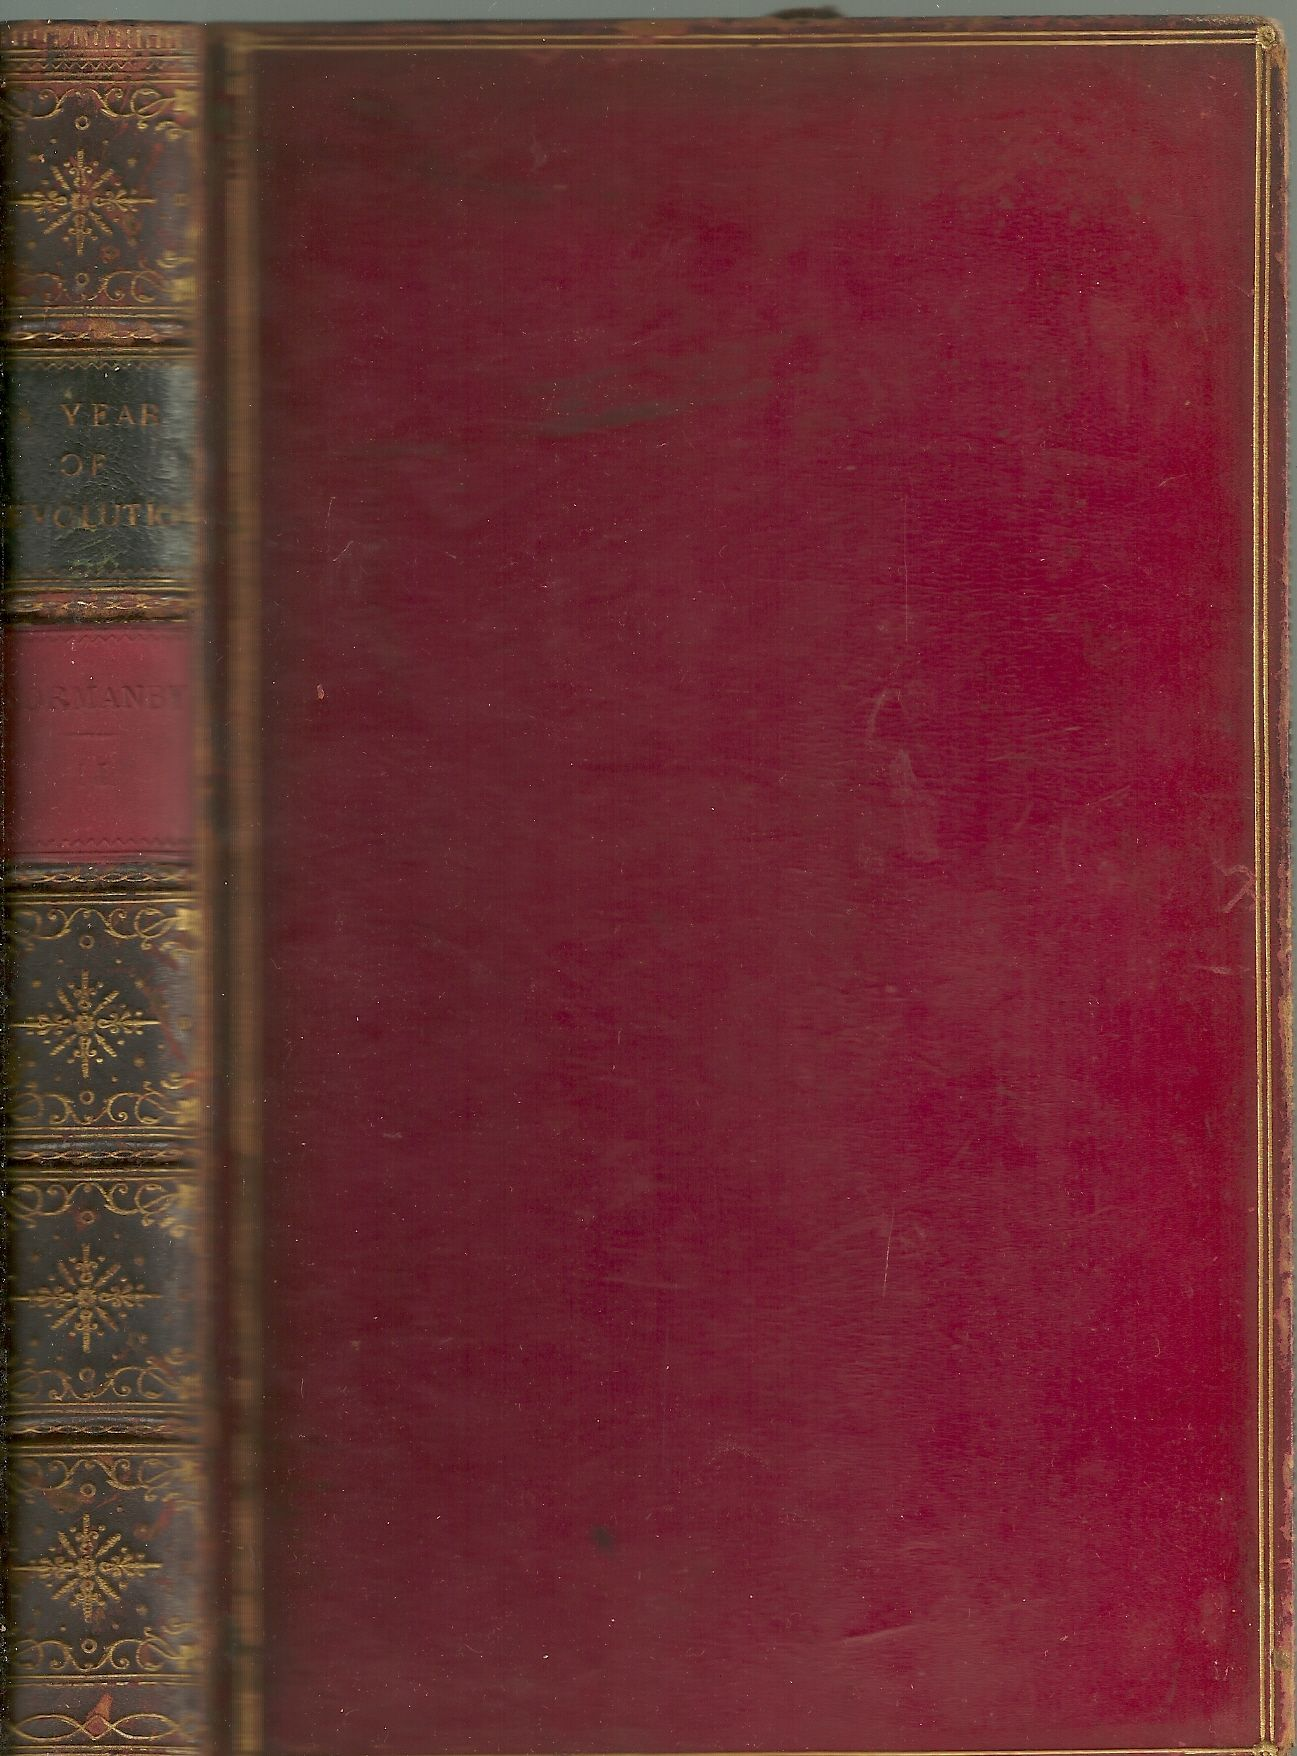 A Year of Revolution from A Journal Kept in Paris in 1848 (Volume II Only), The Marquis of Normanby, K.G.